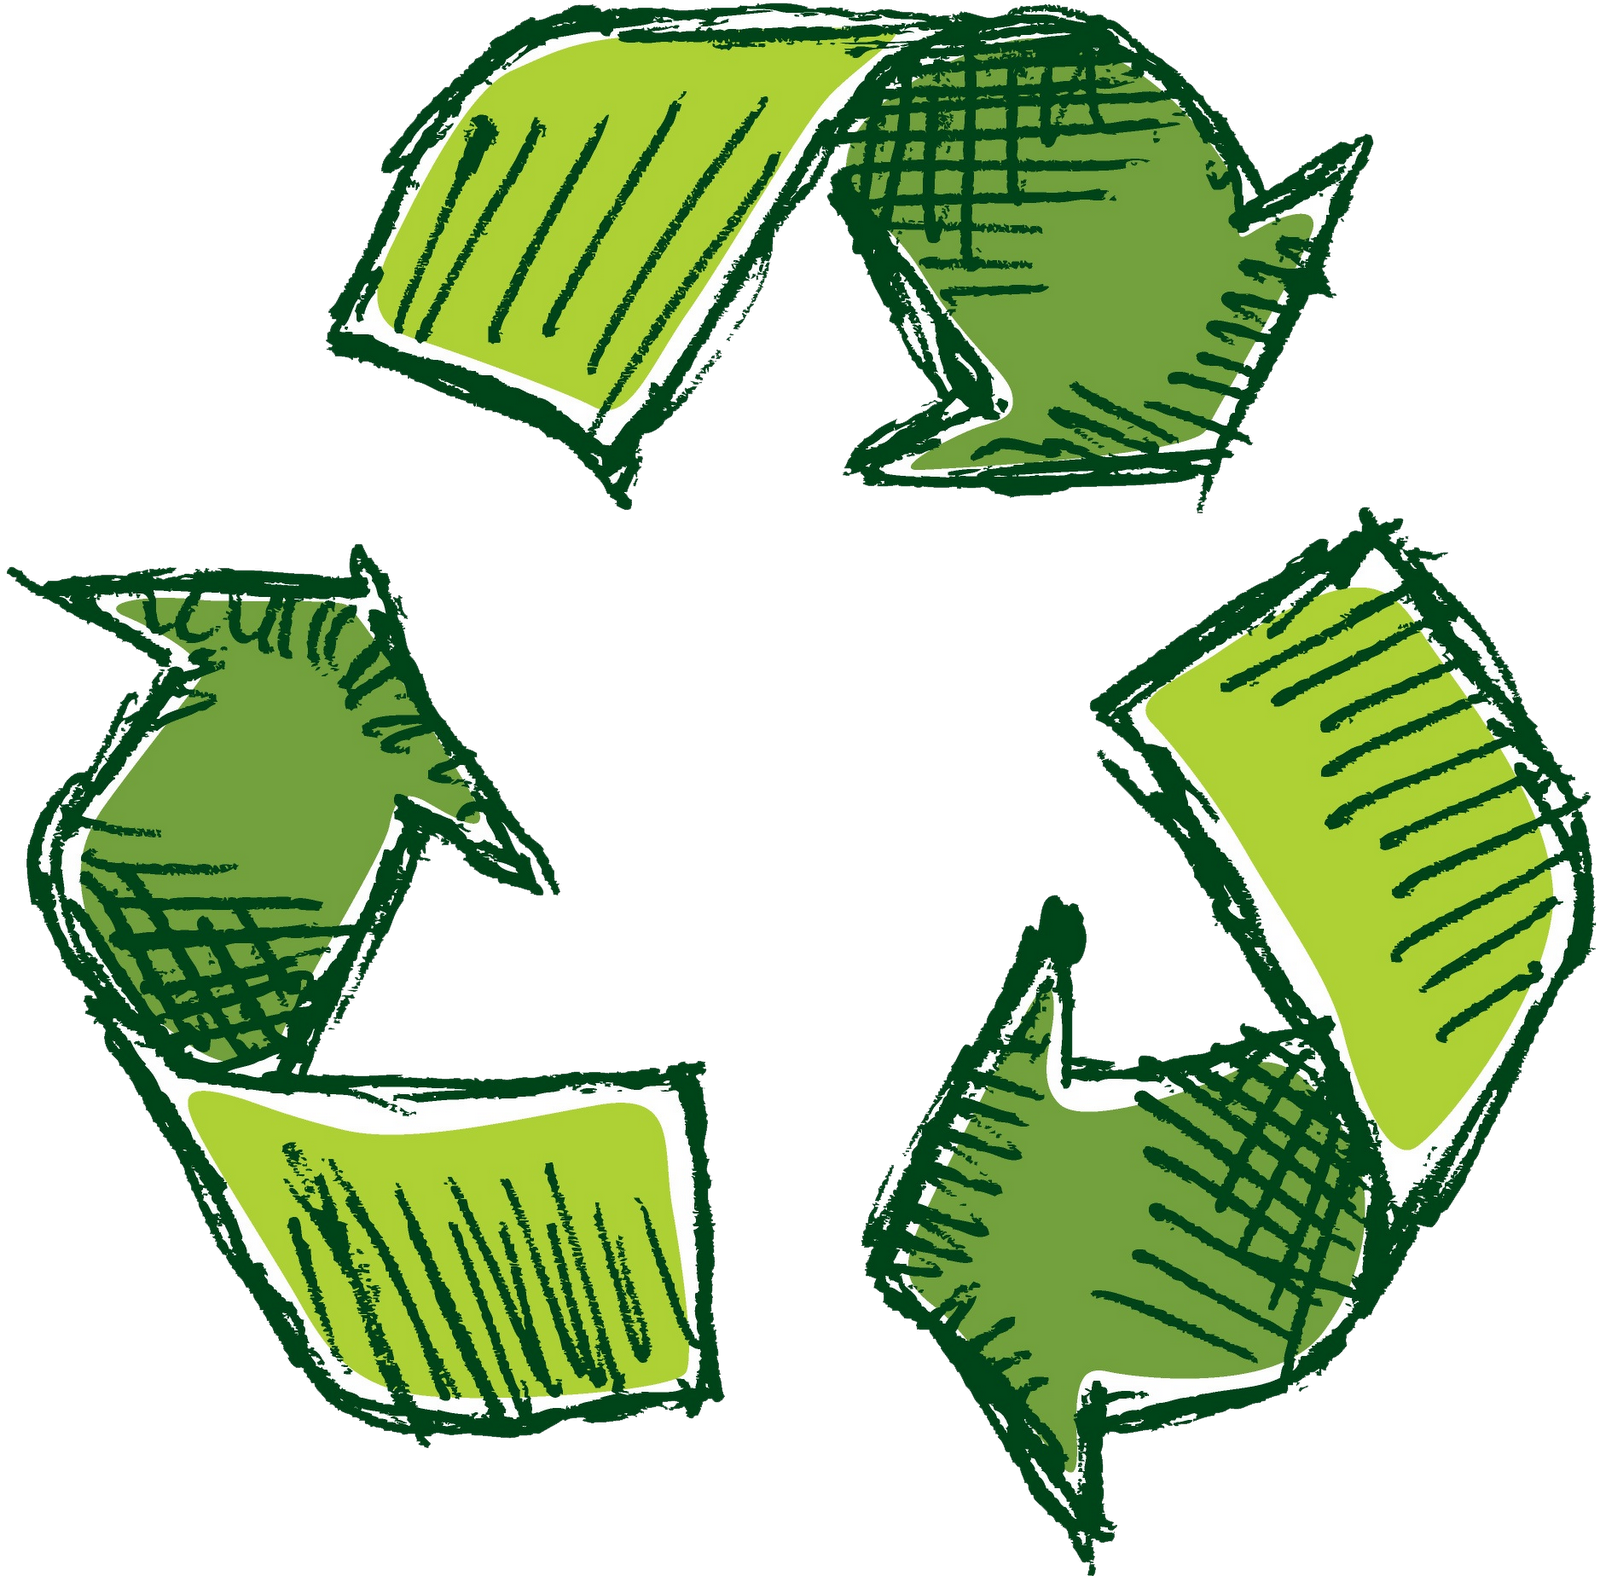 Landfill Recycle Symbol Recycling HD Image Free PNG PNG Image